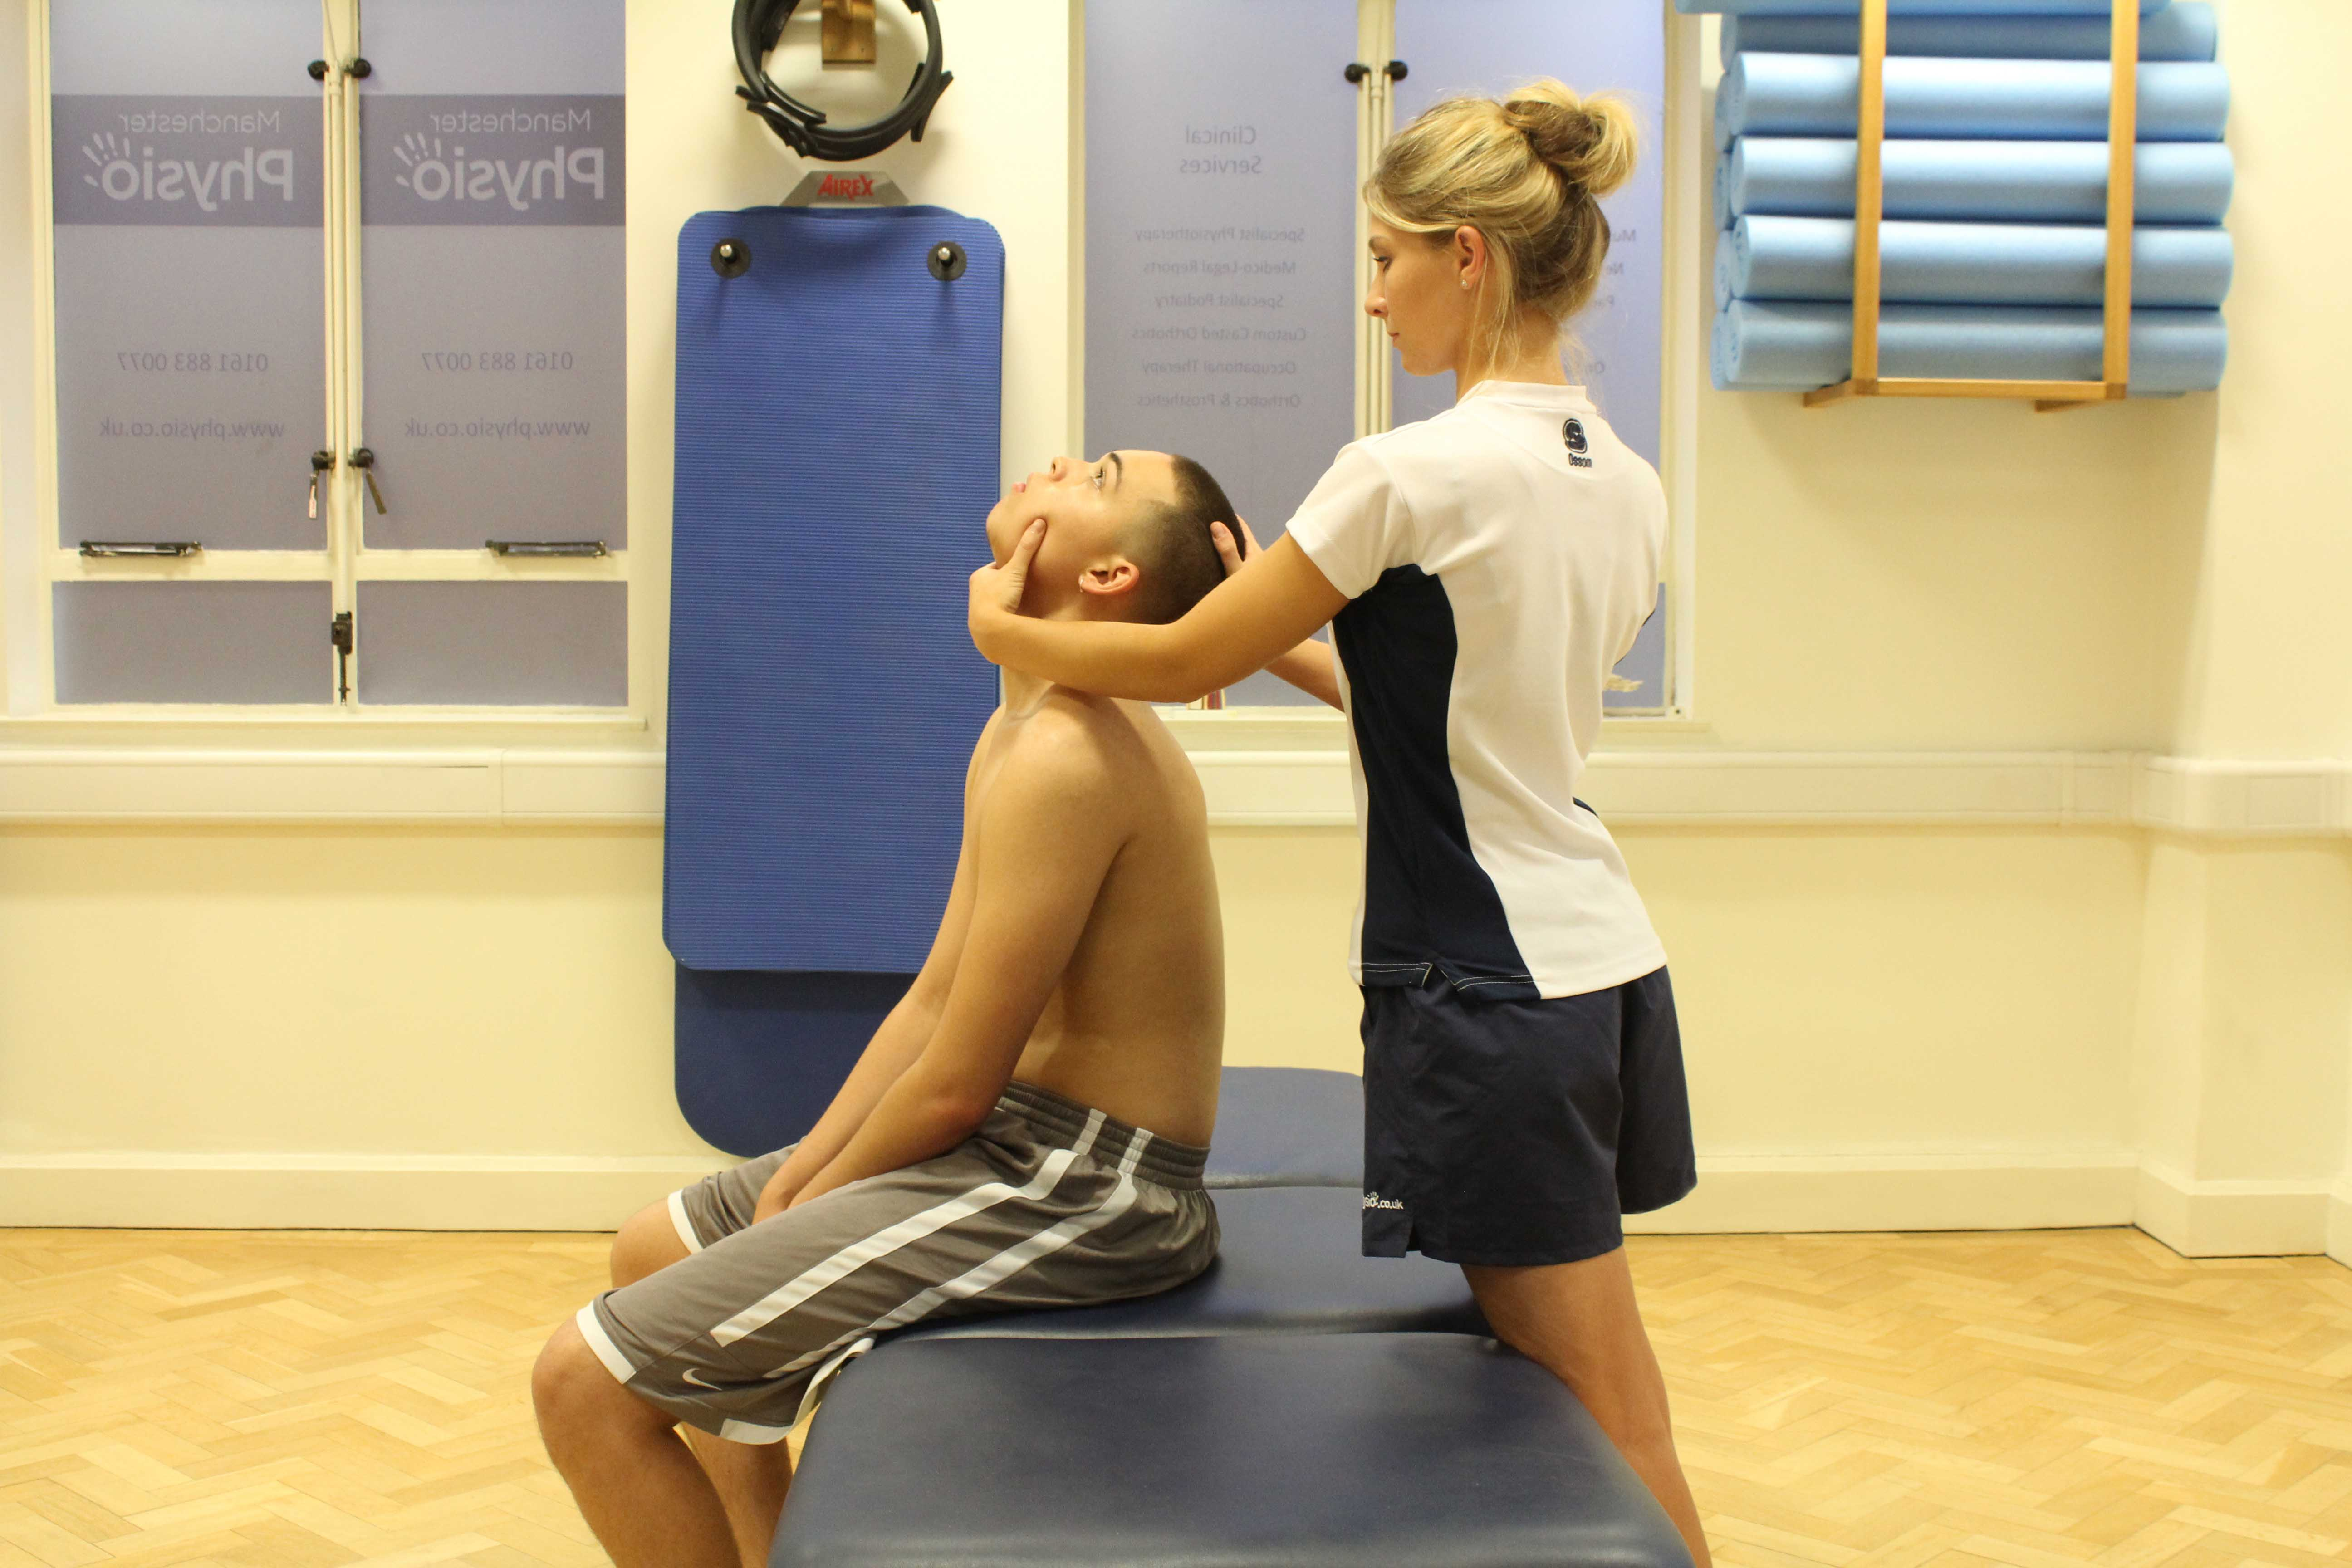 Stretches and realignment of the cervical spine by therapist